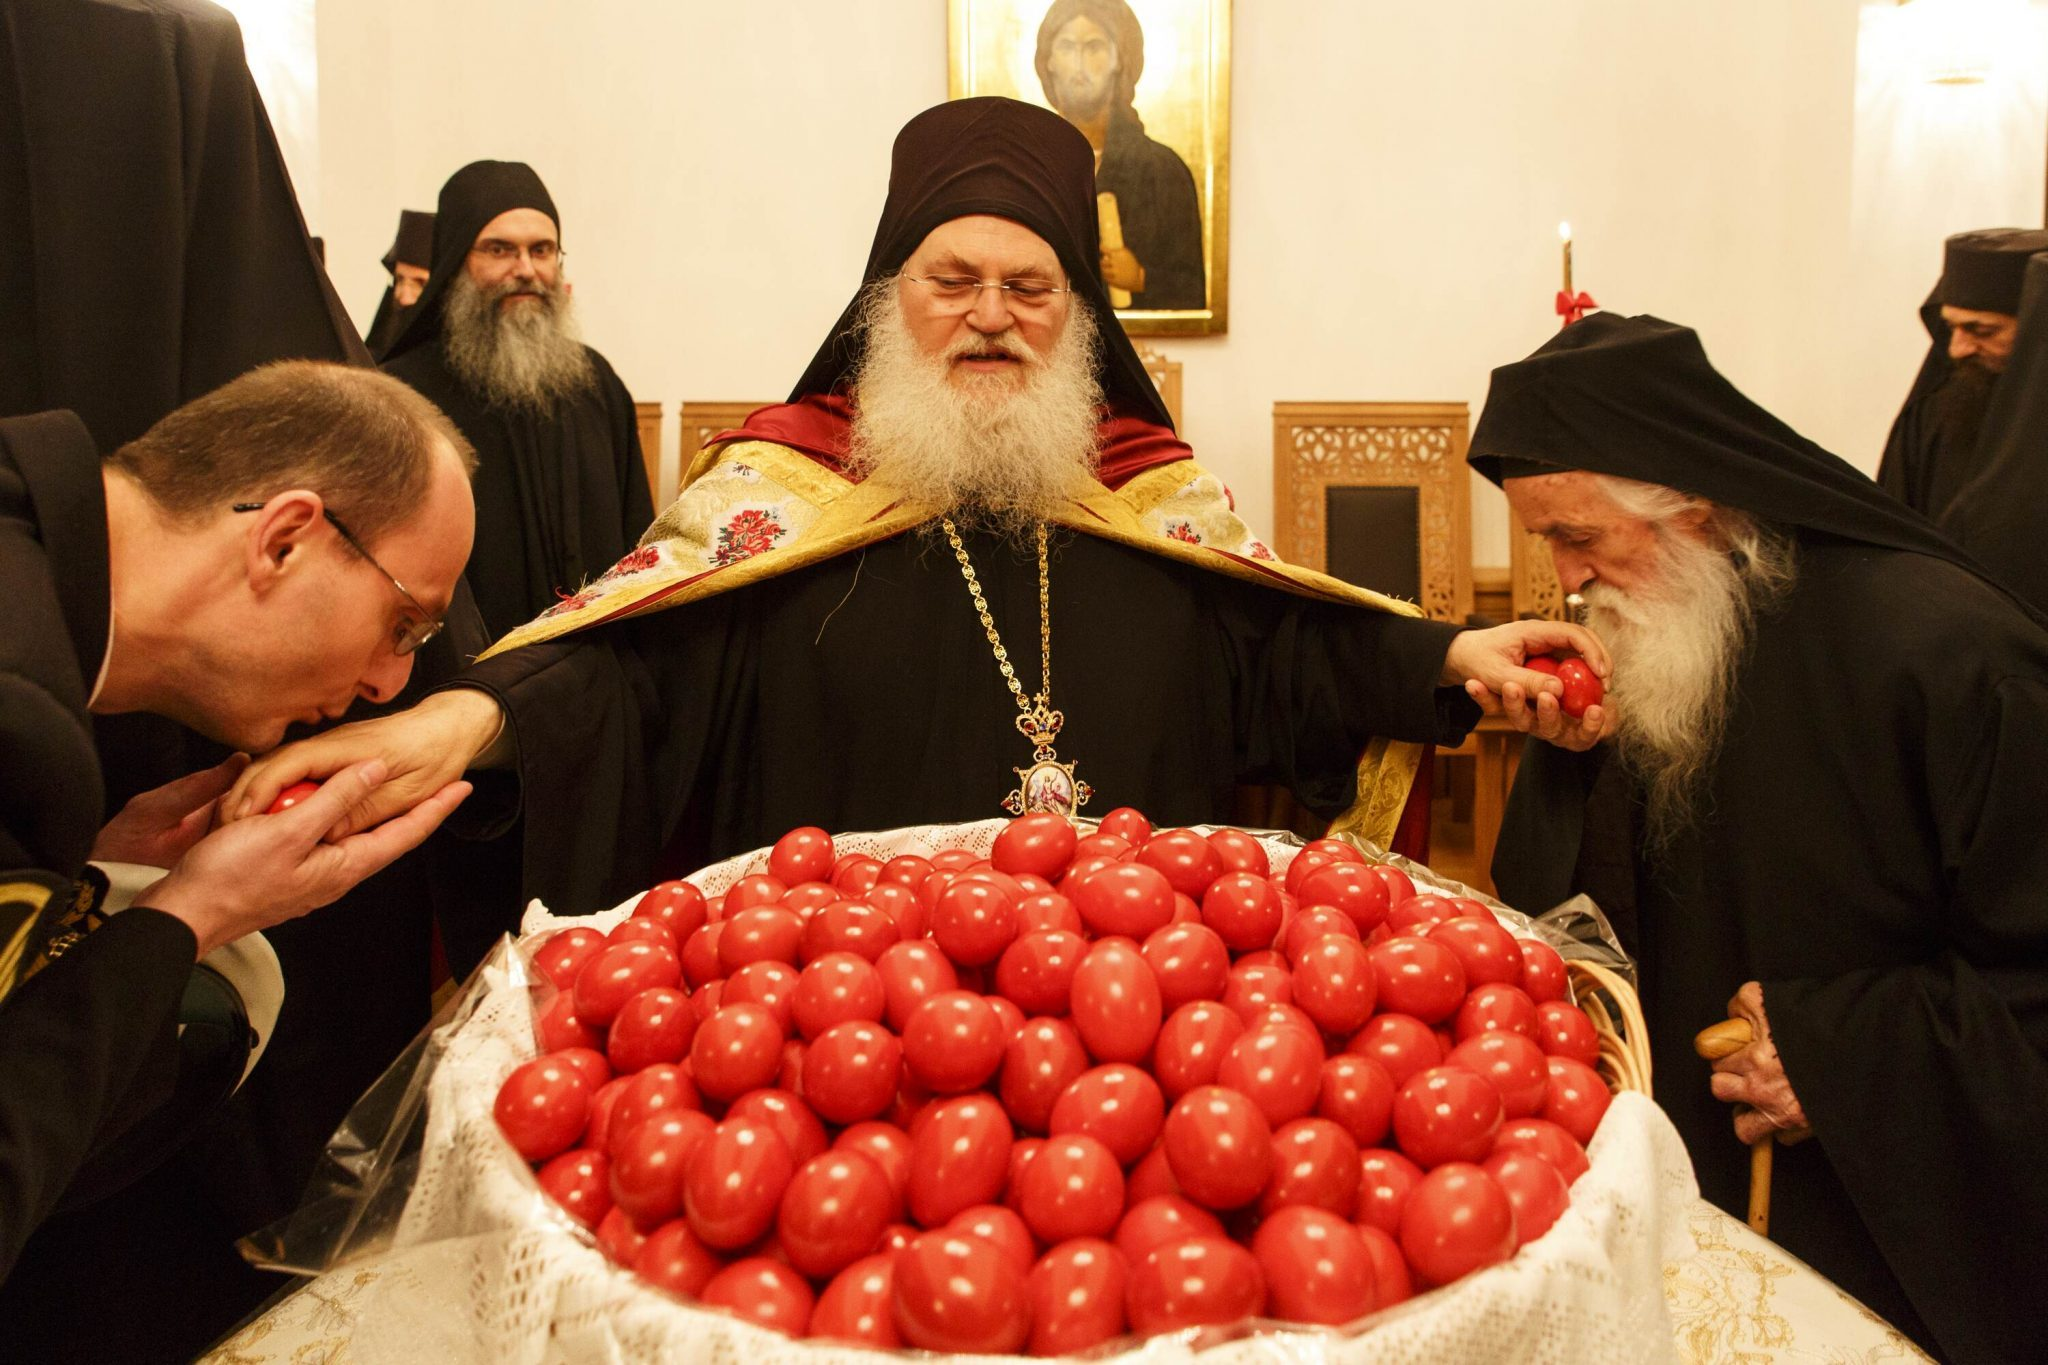 The Elder Ephraim is sharing red eggs after the service.